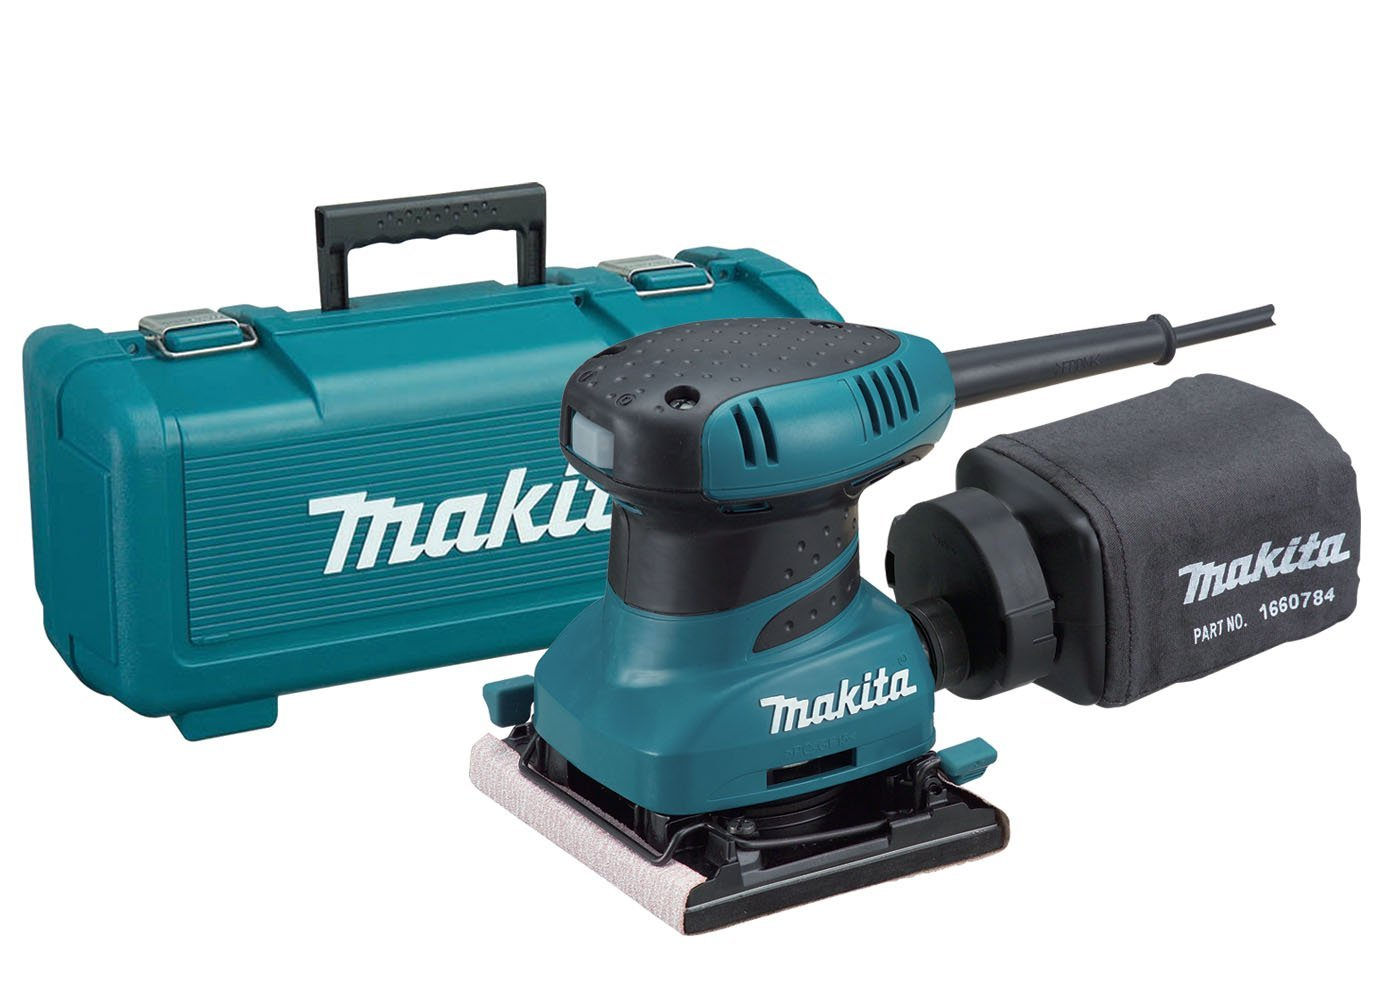 SANDER FINISHING B04556 MAKITA